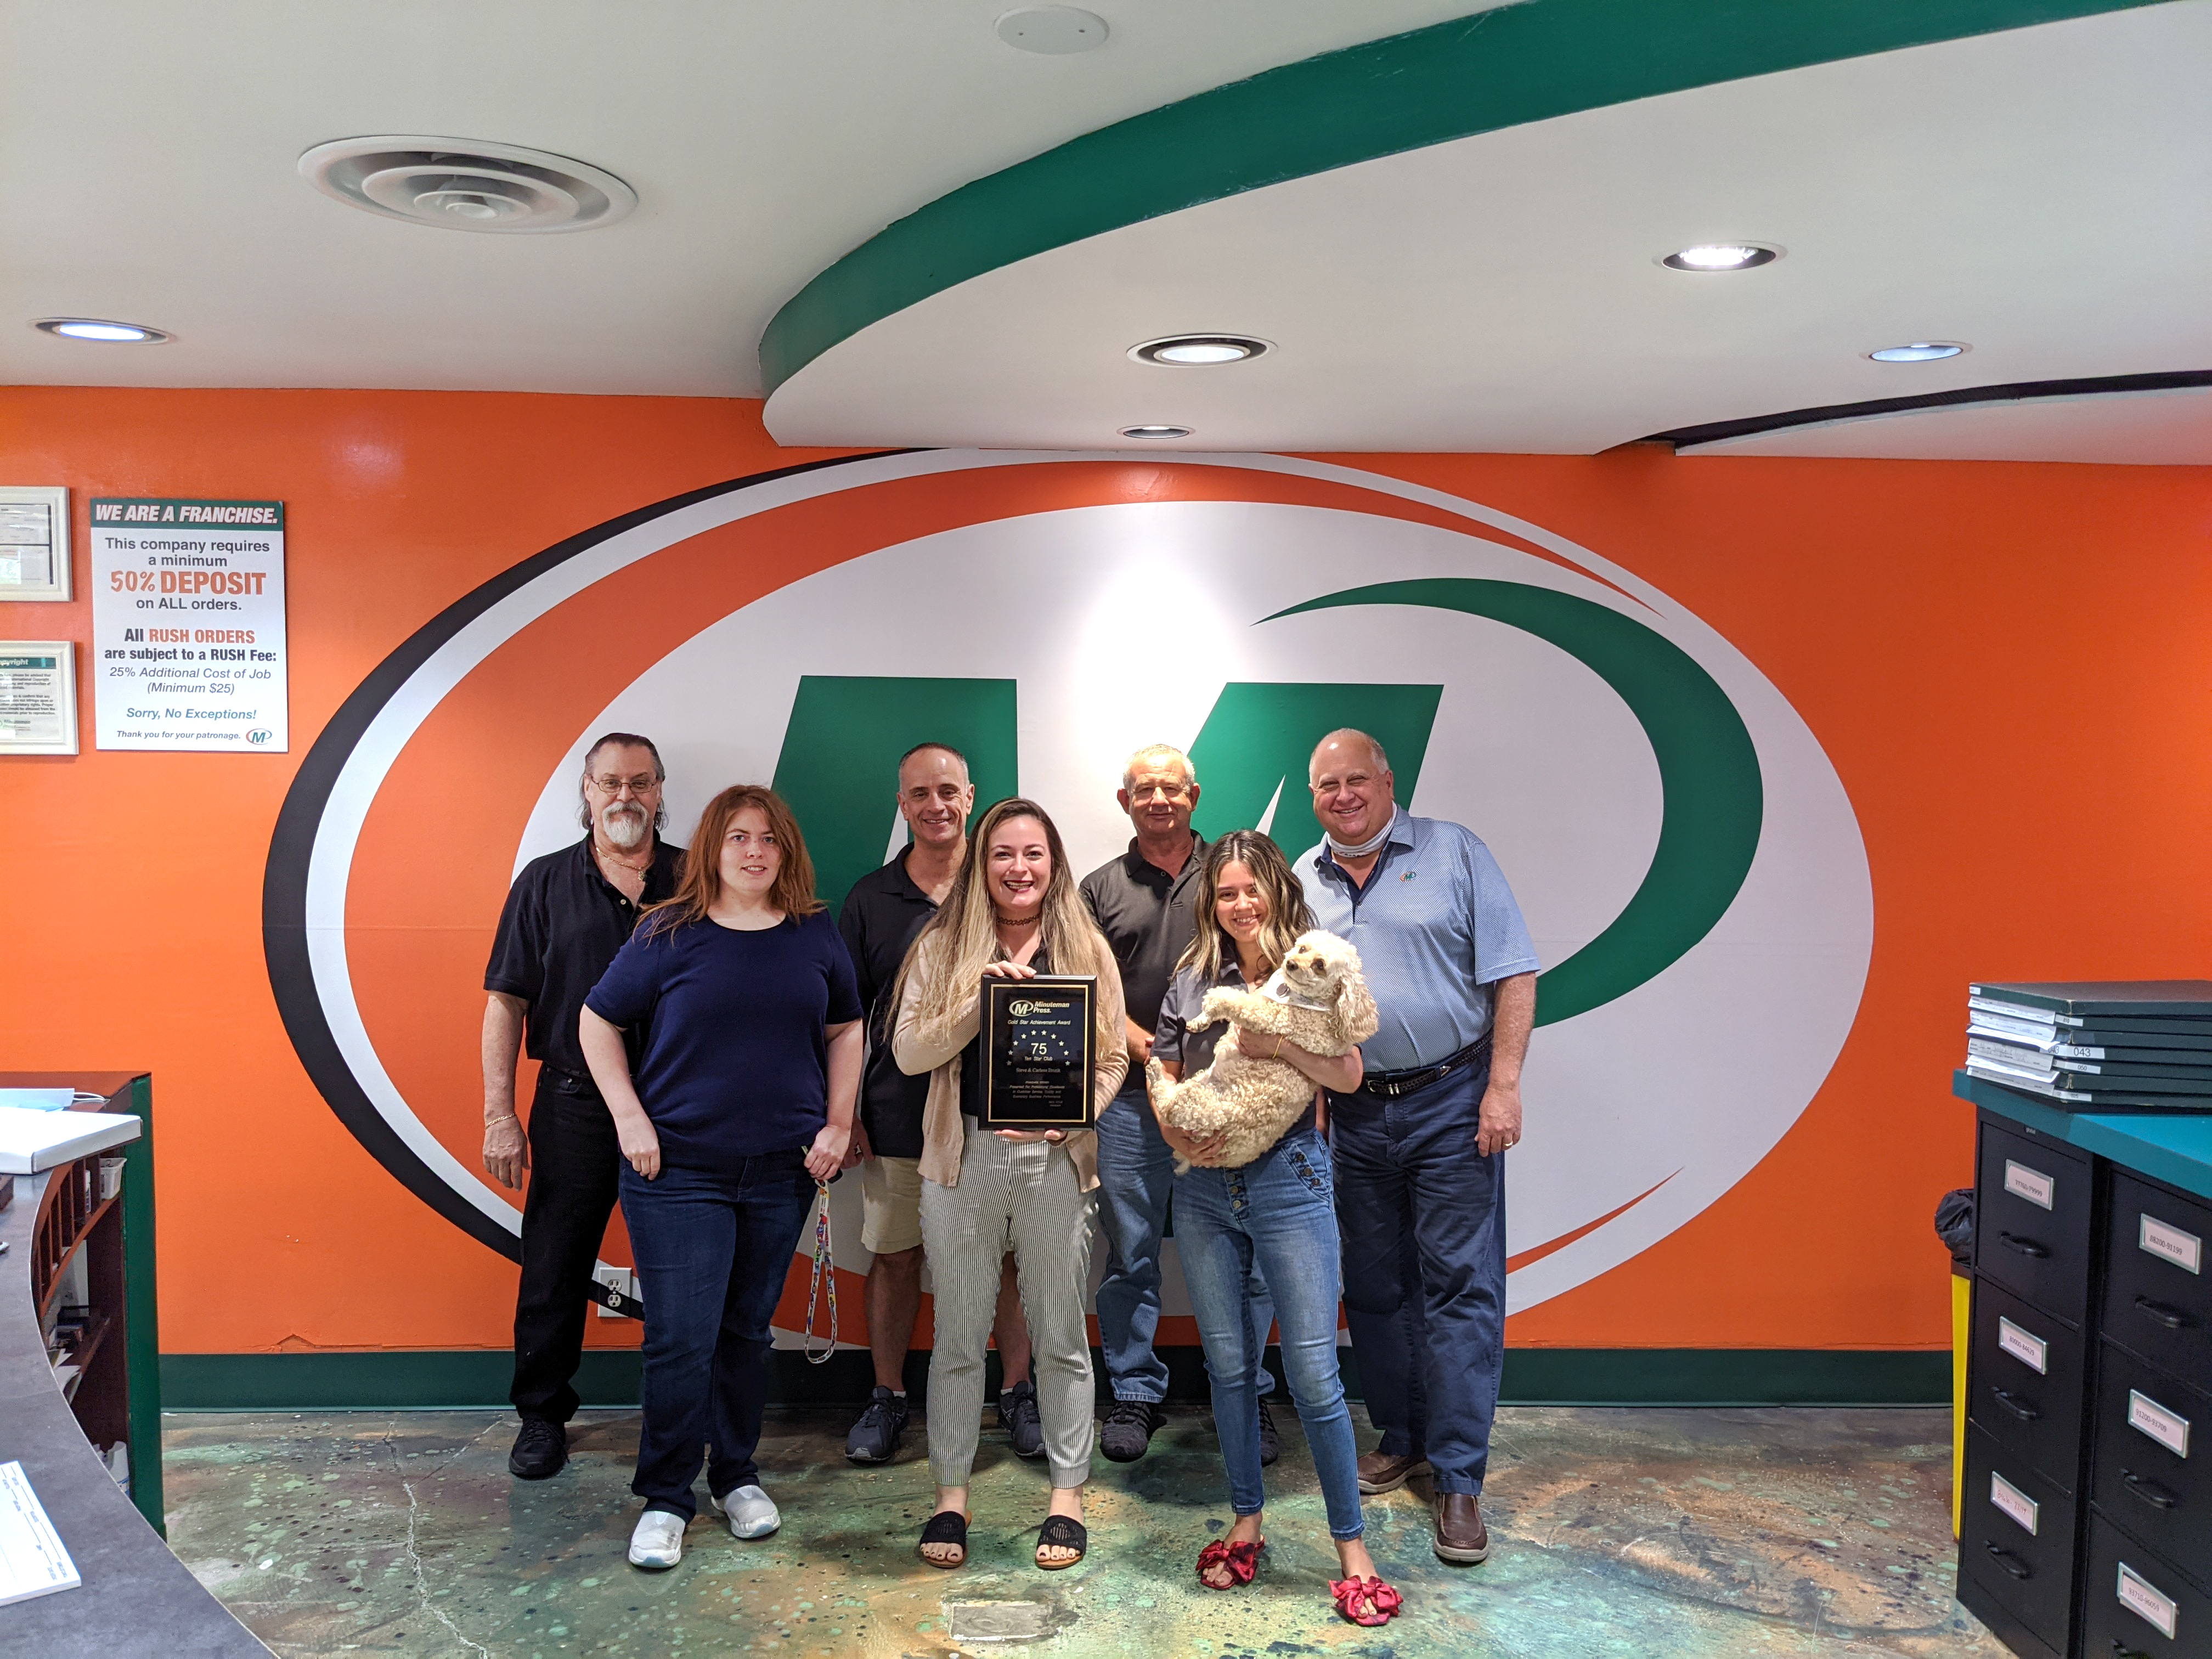 Steve Brunk (right) and the team of Minuteman Press, Port St. Lucie, FL.